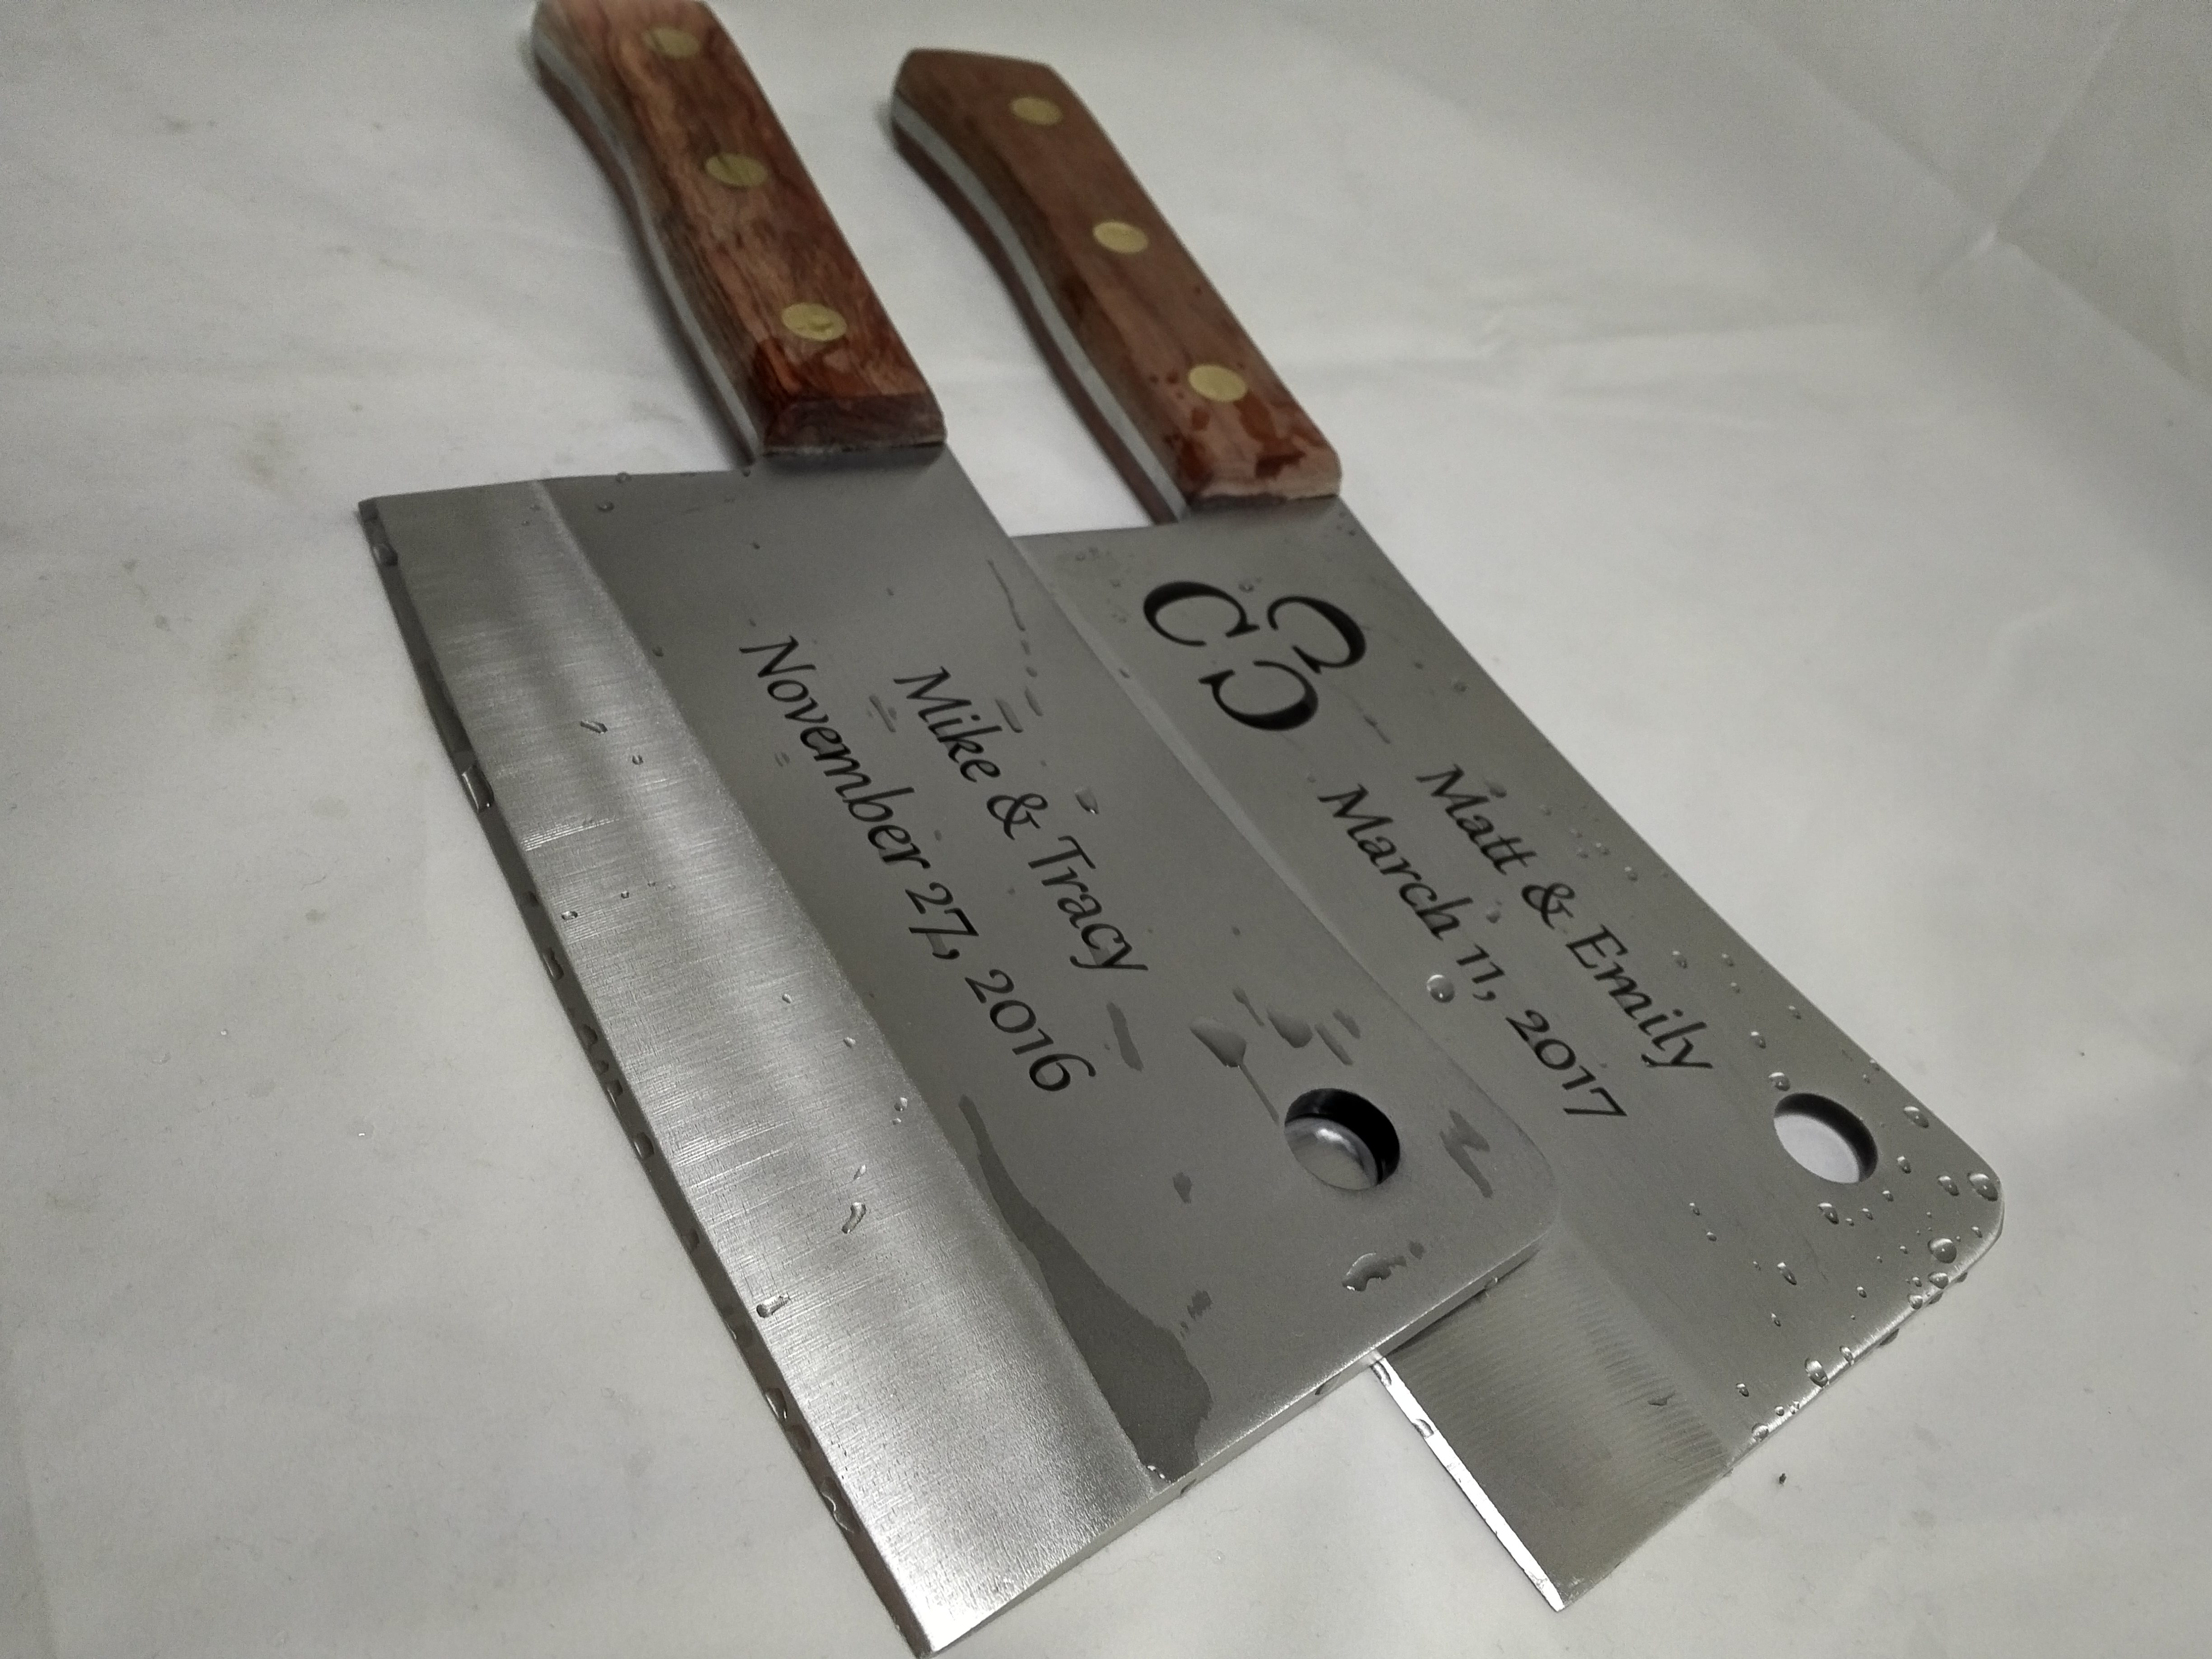 A Personalized Knife